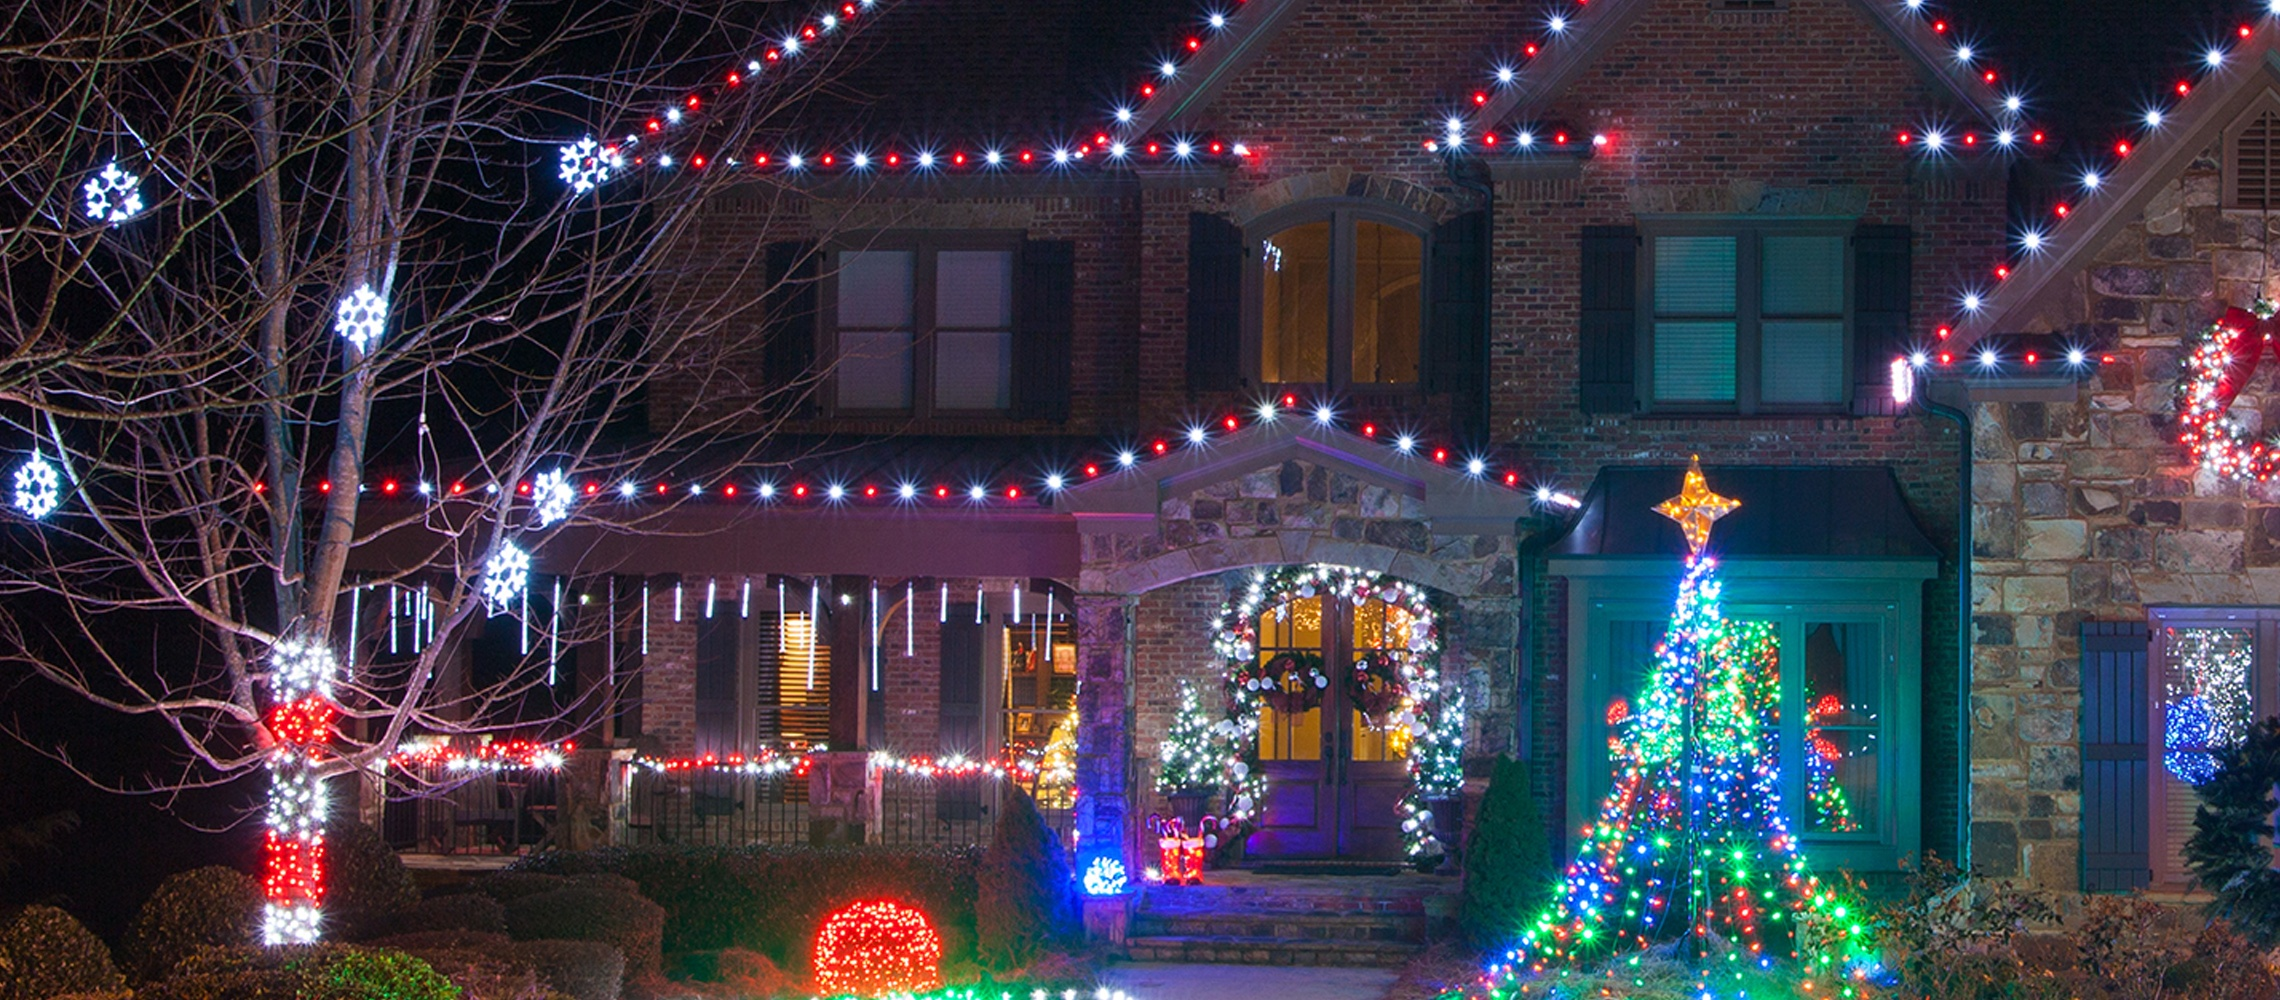 Outdoor christmas lights house ideas plain christmas outdoor christmas lights house ideas plain christmas grandcascaderooflightsimage9jpg intended outdoor christmas lights house ideas o aloadofball Image collections